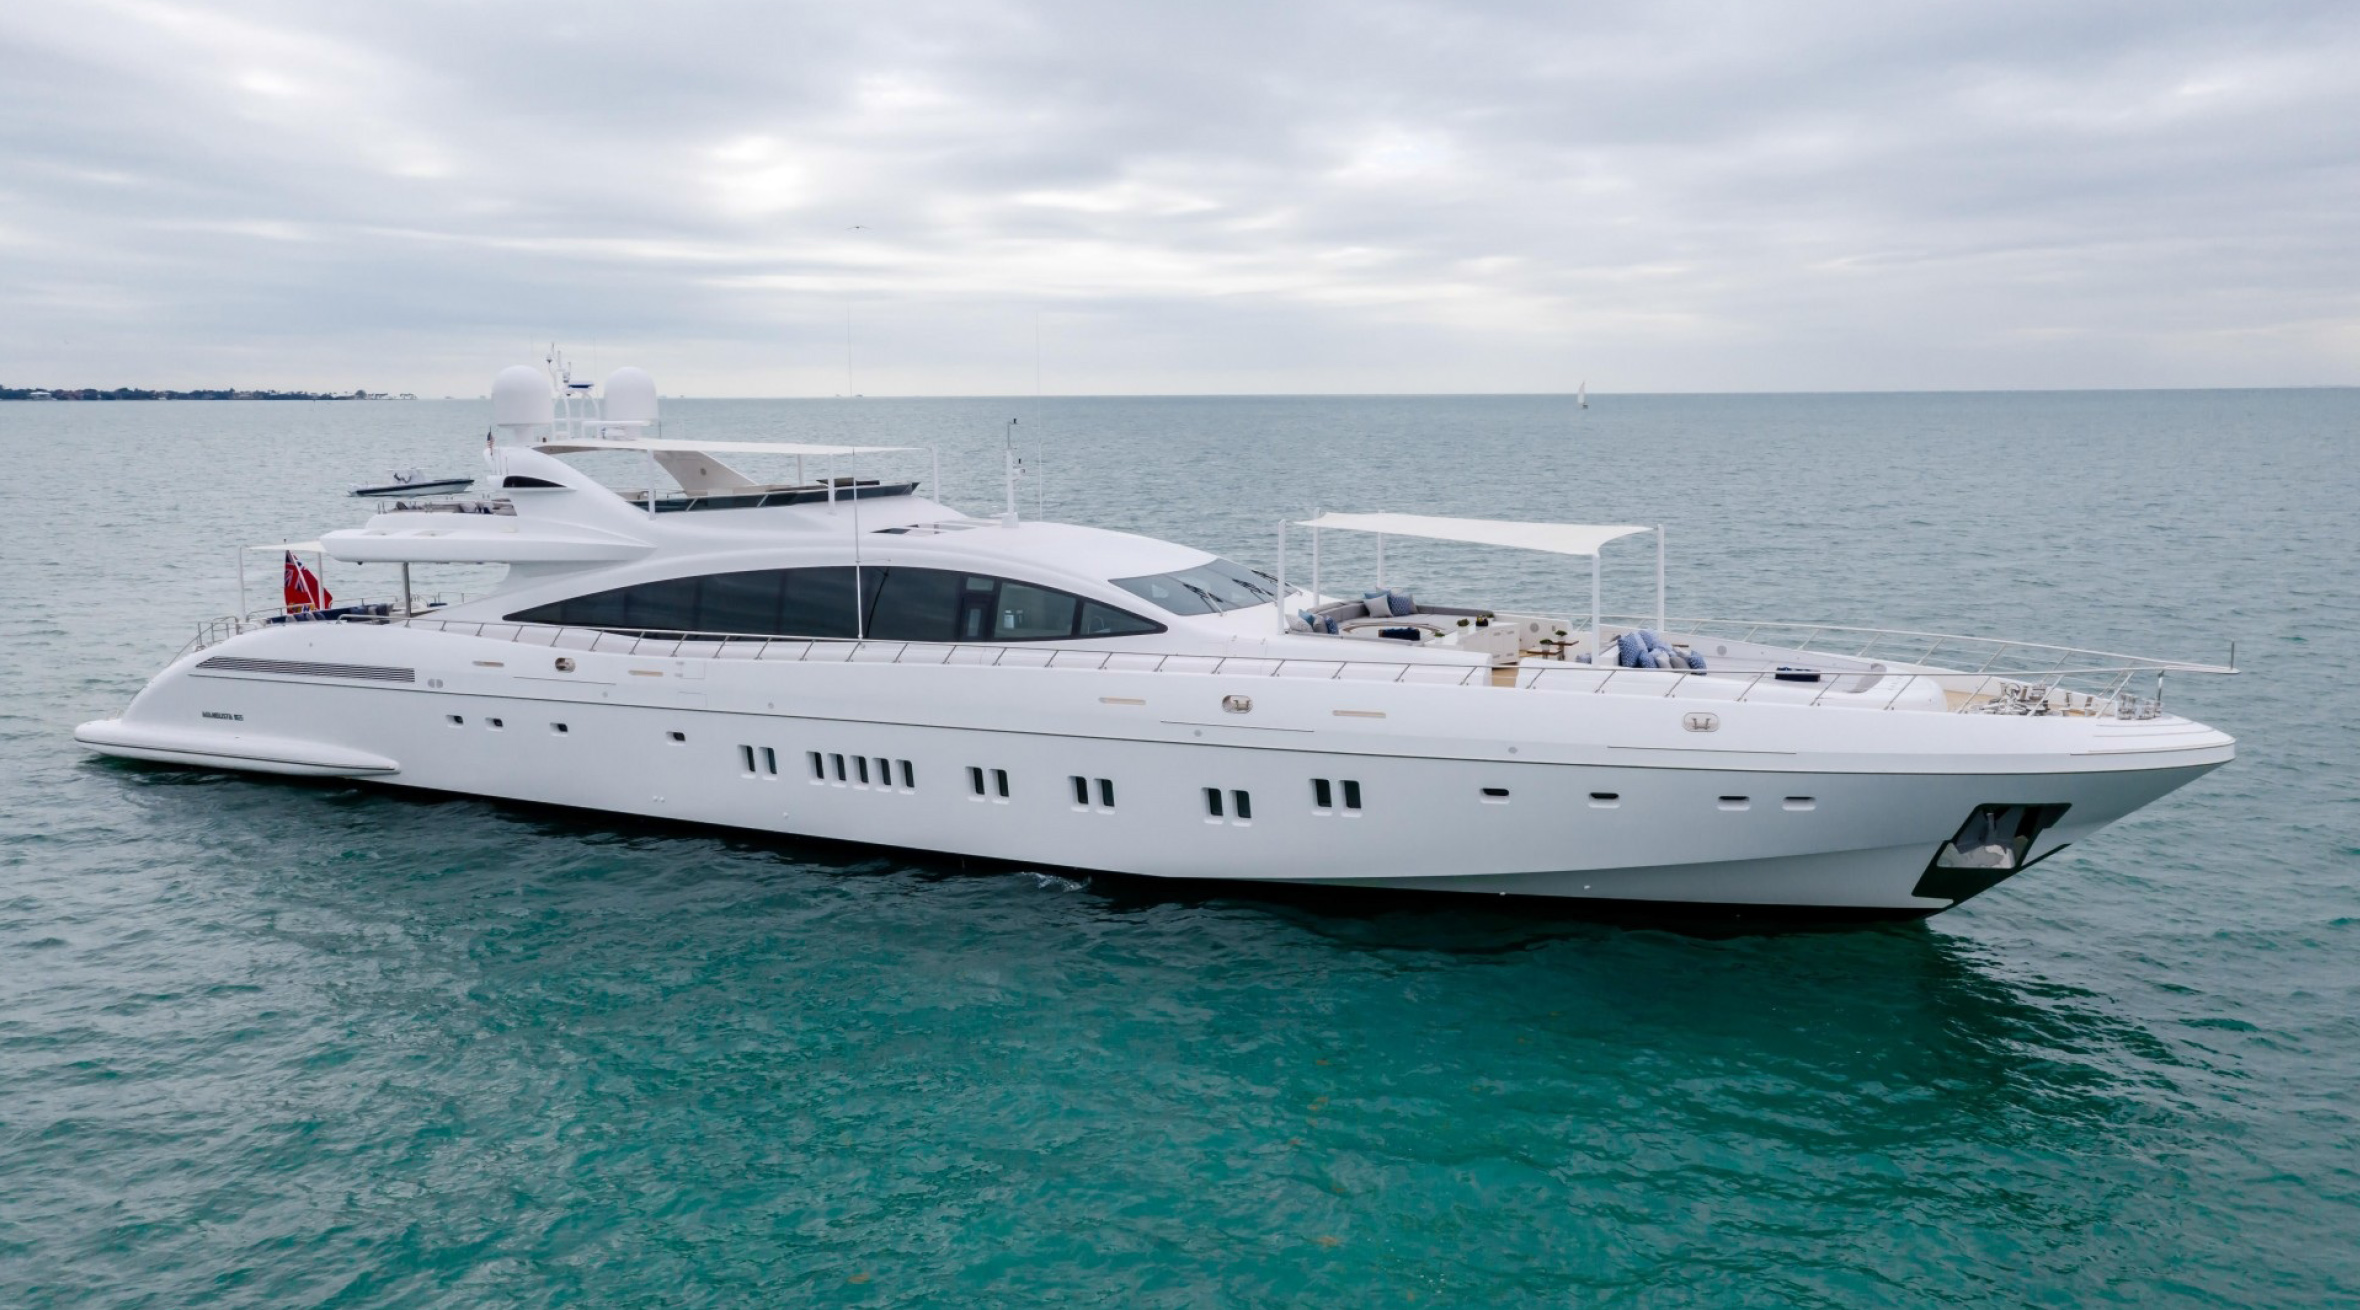 Motor Yacht Incognito Exterior